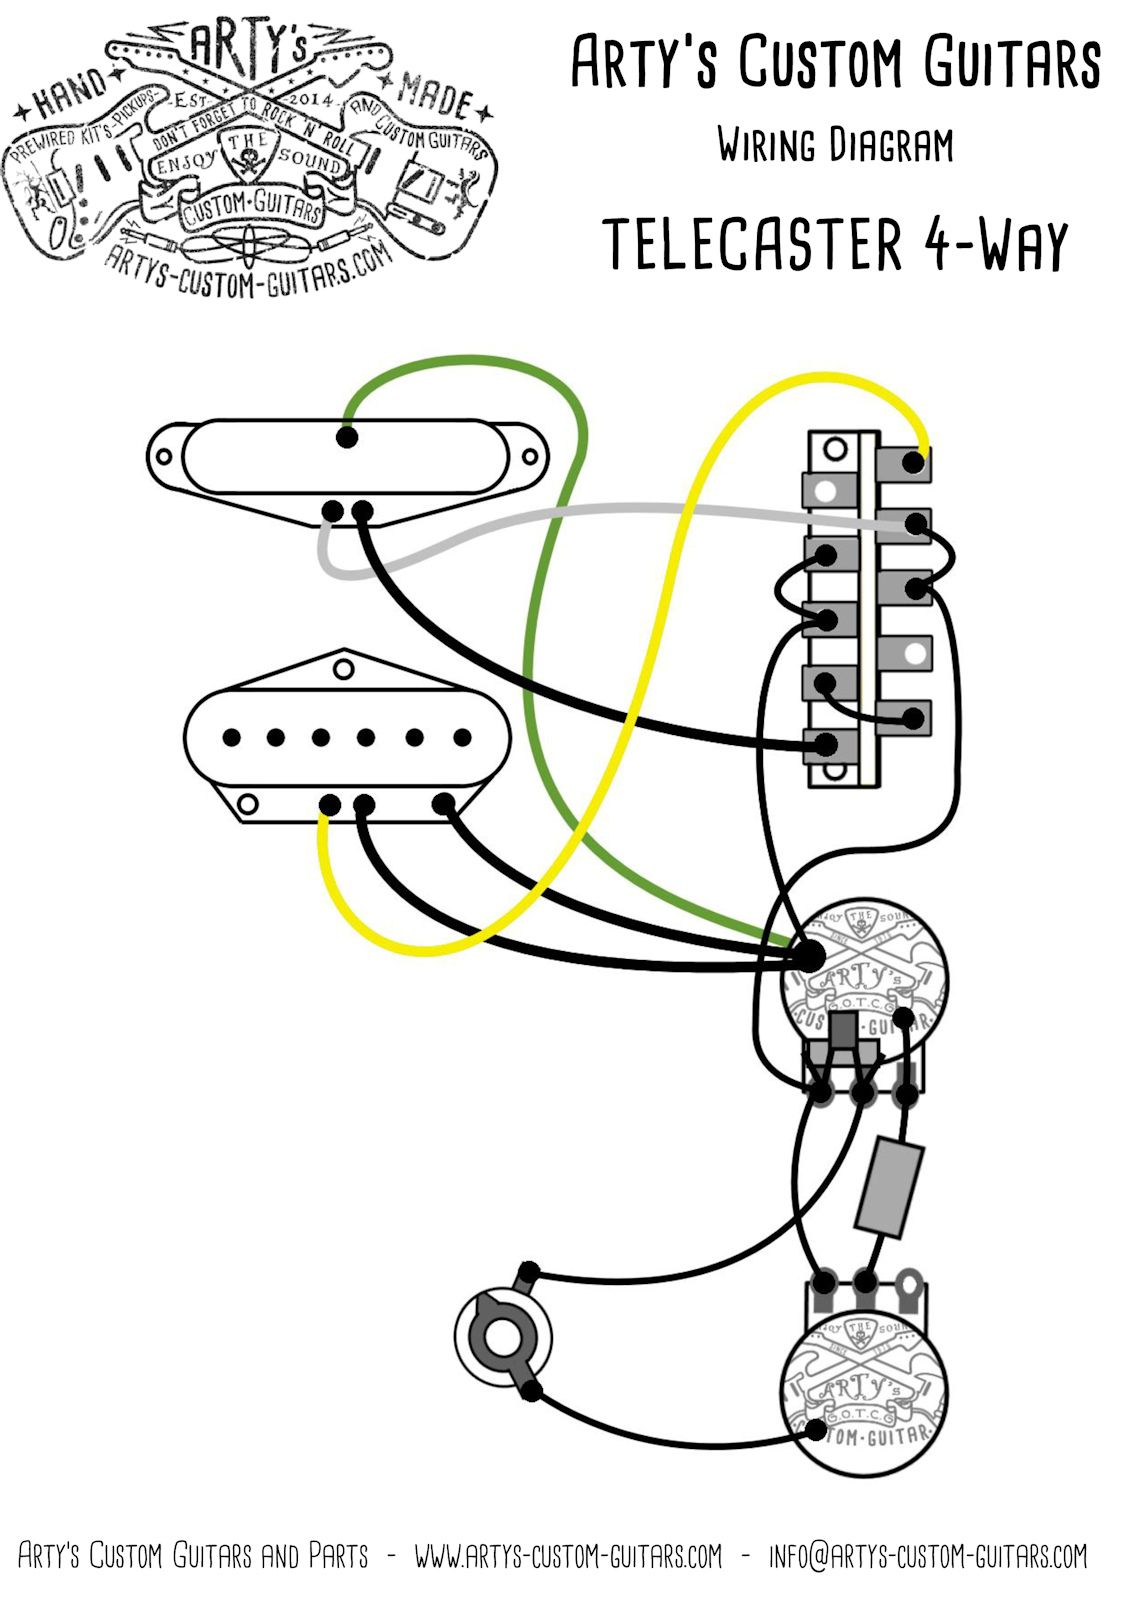 small resolution of arty s custom guitars wiring diagram plan telecaster assembly harness tele